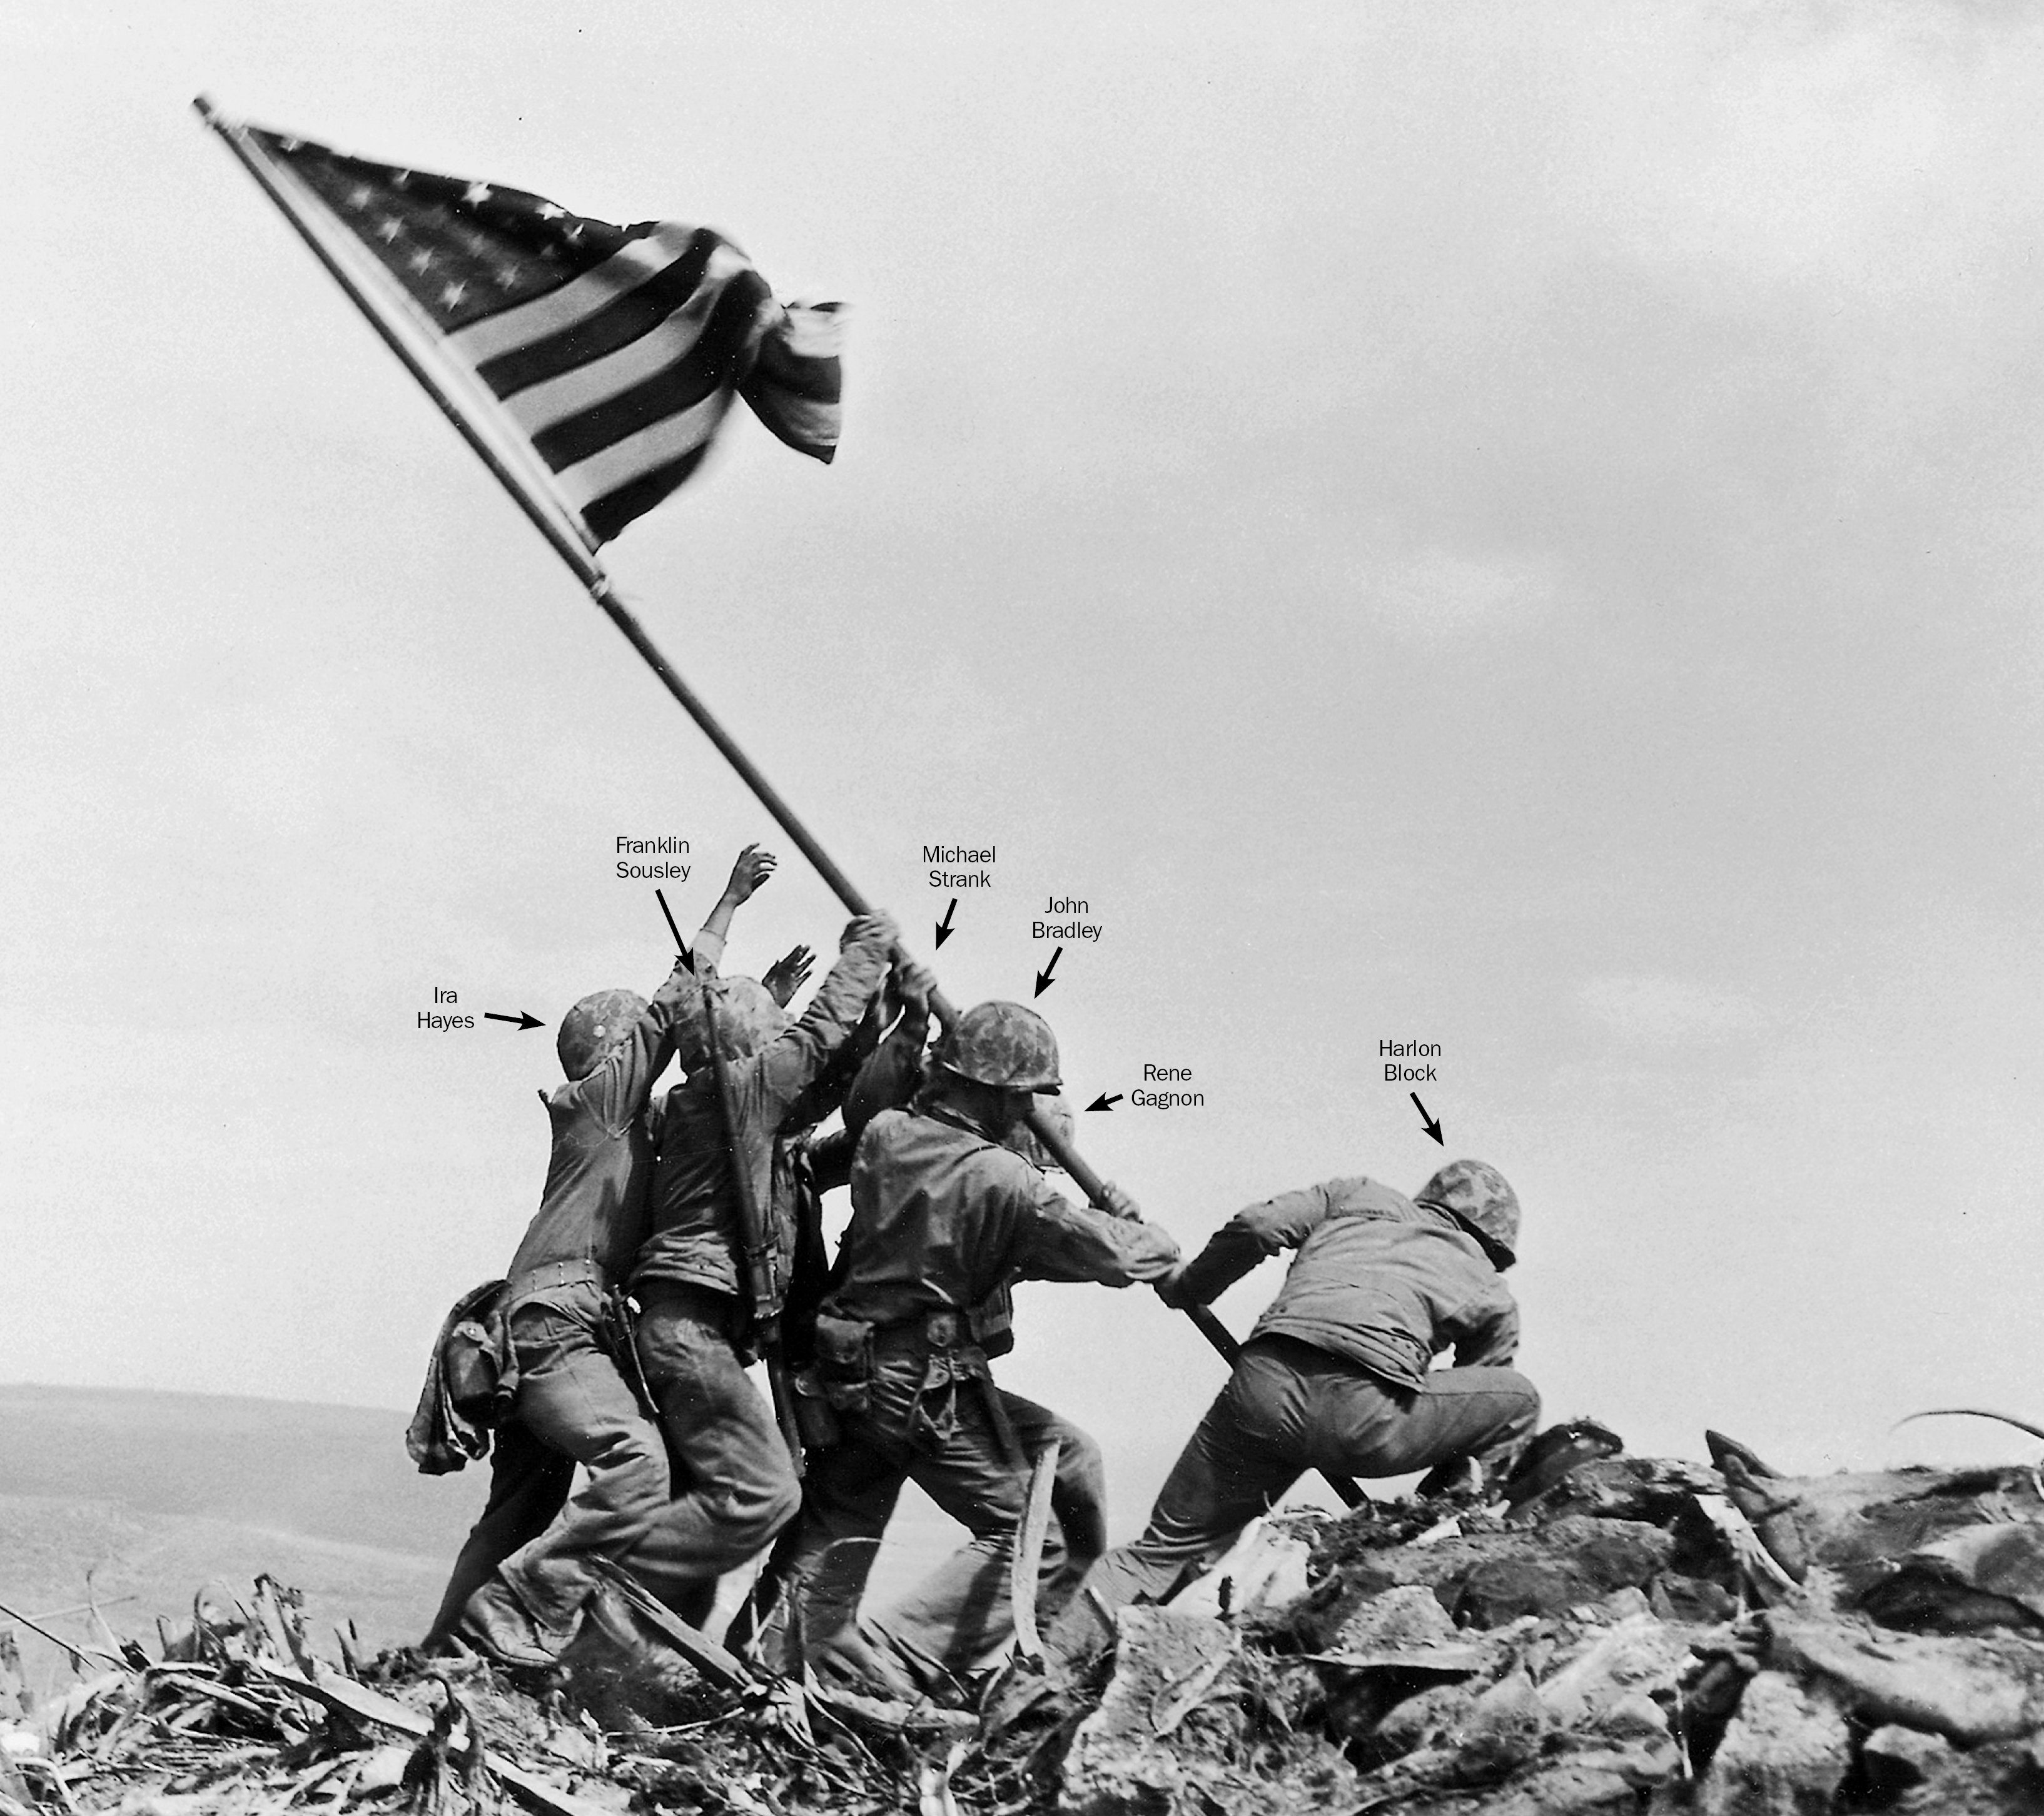 Iwo Jima: New mystery arises from iconic image Omaha. Omaha